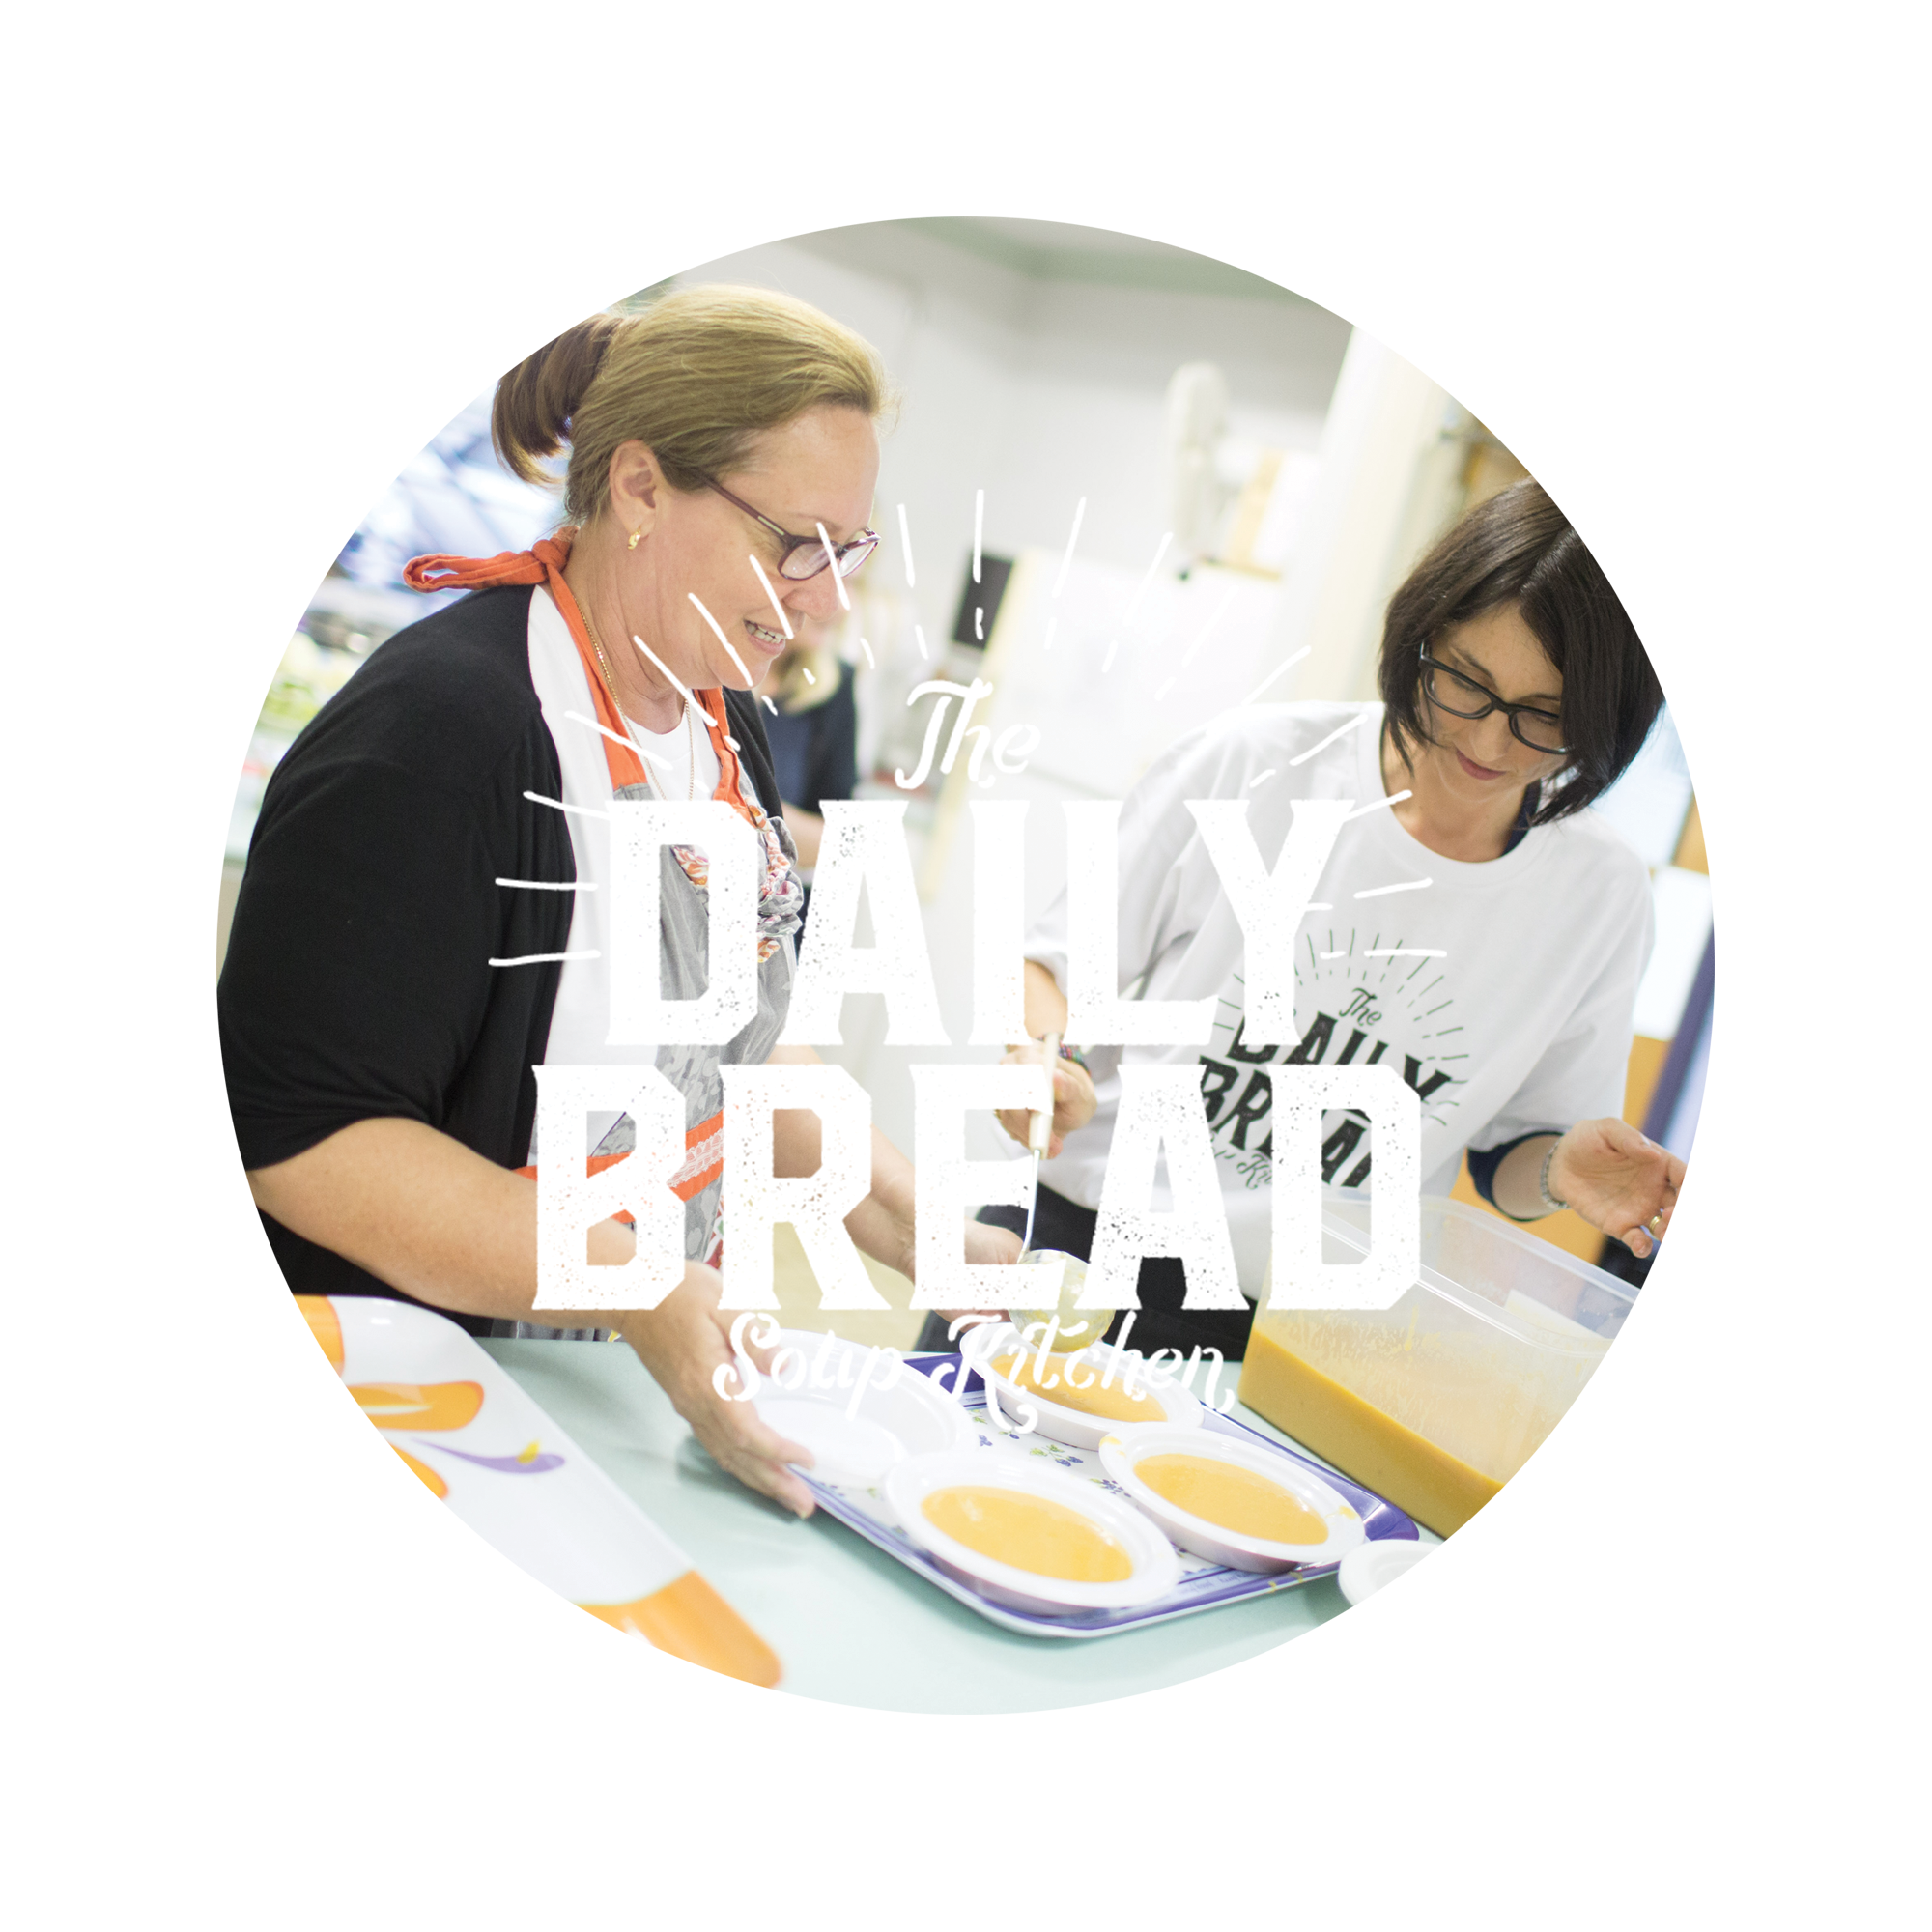 THE DAILY BREAD - The Daily Bread Soup Kitchen is a free meal service for those in need. We believe in giving people a hand up not just a hand out!OPEN FROM 4PM - 6PM — Monday & Wednesday10 Sydney Street, Nambour, Queensland 456007 5441 4877